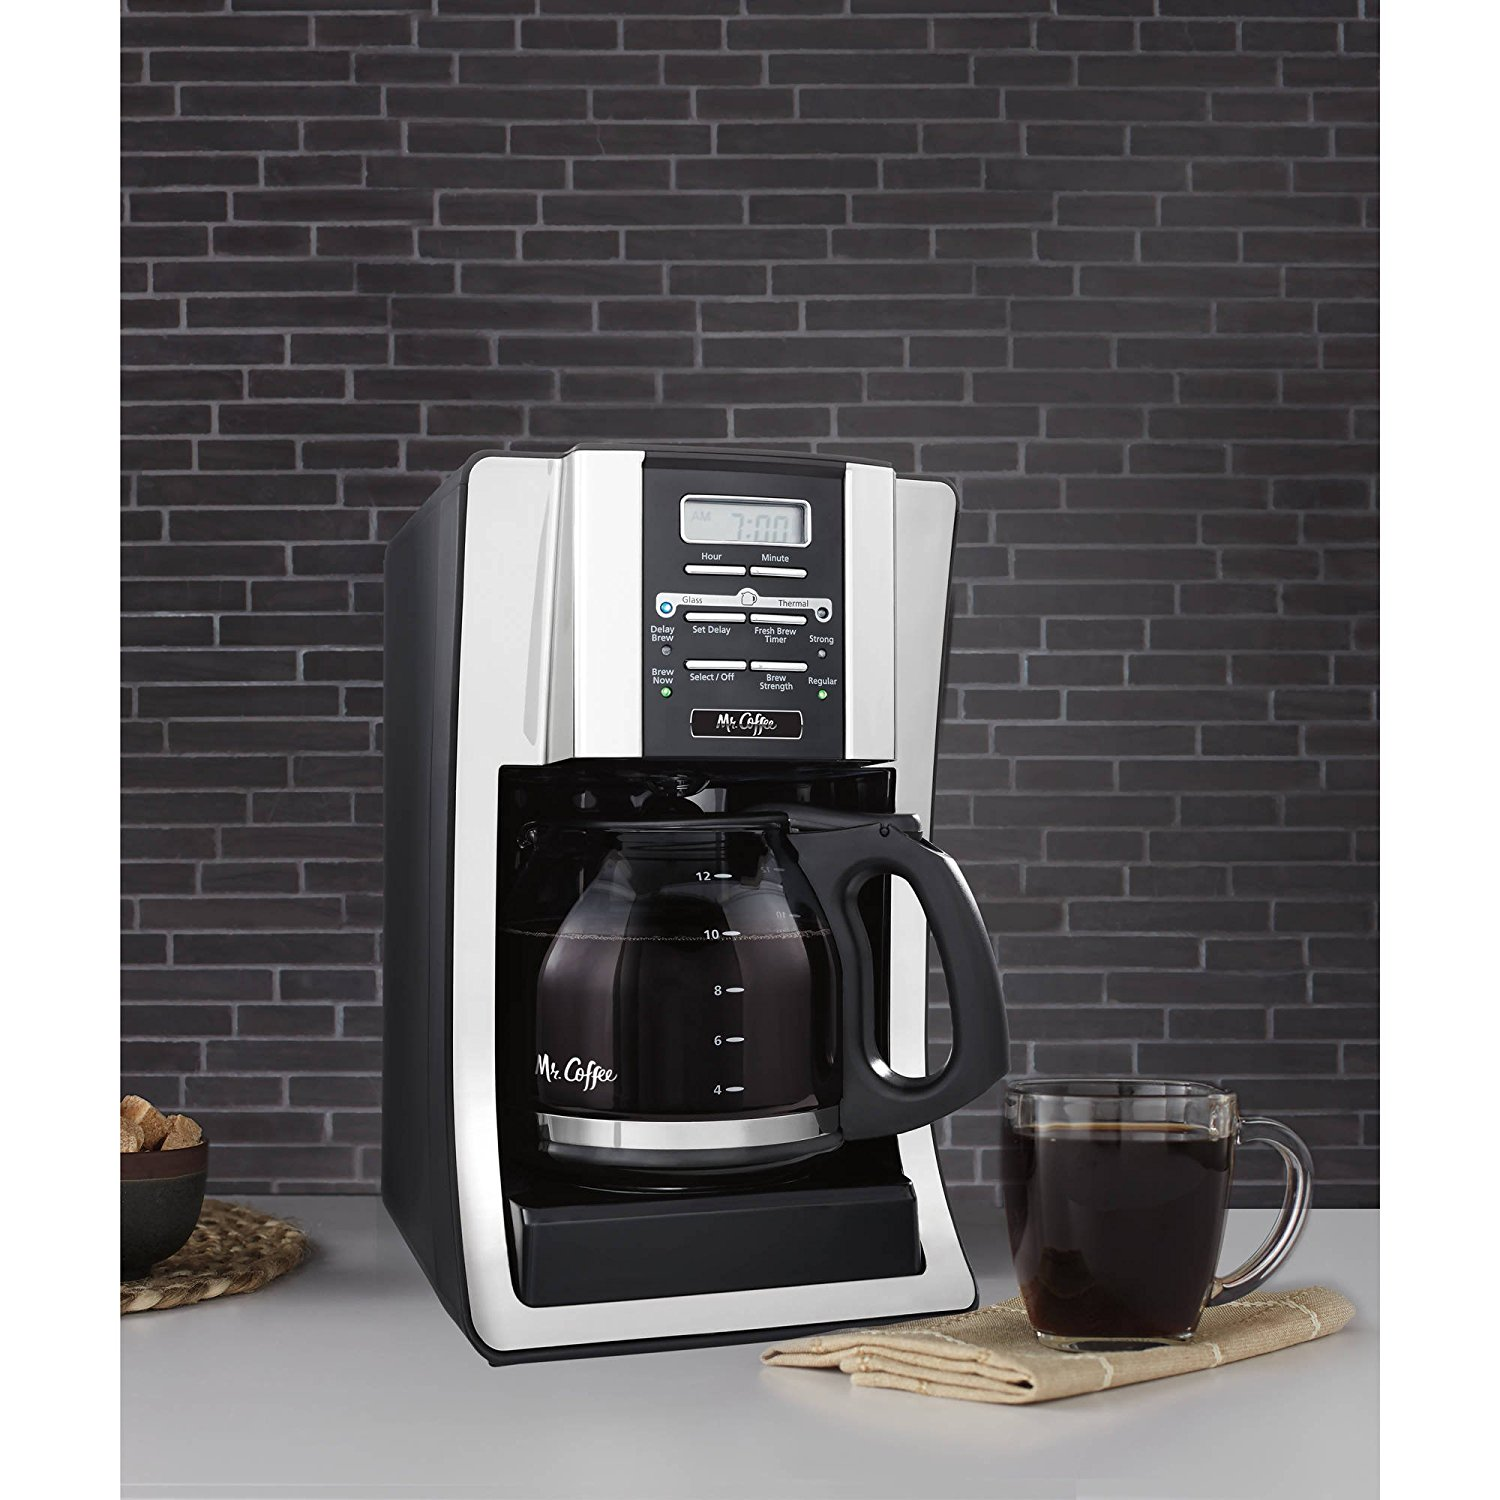 Mr. Coffee Brewing Coffee Maker (12-Cup Programmable)